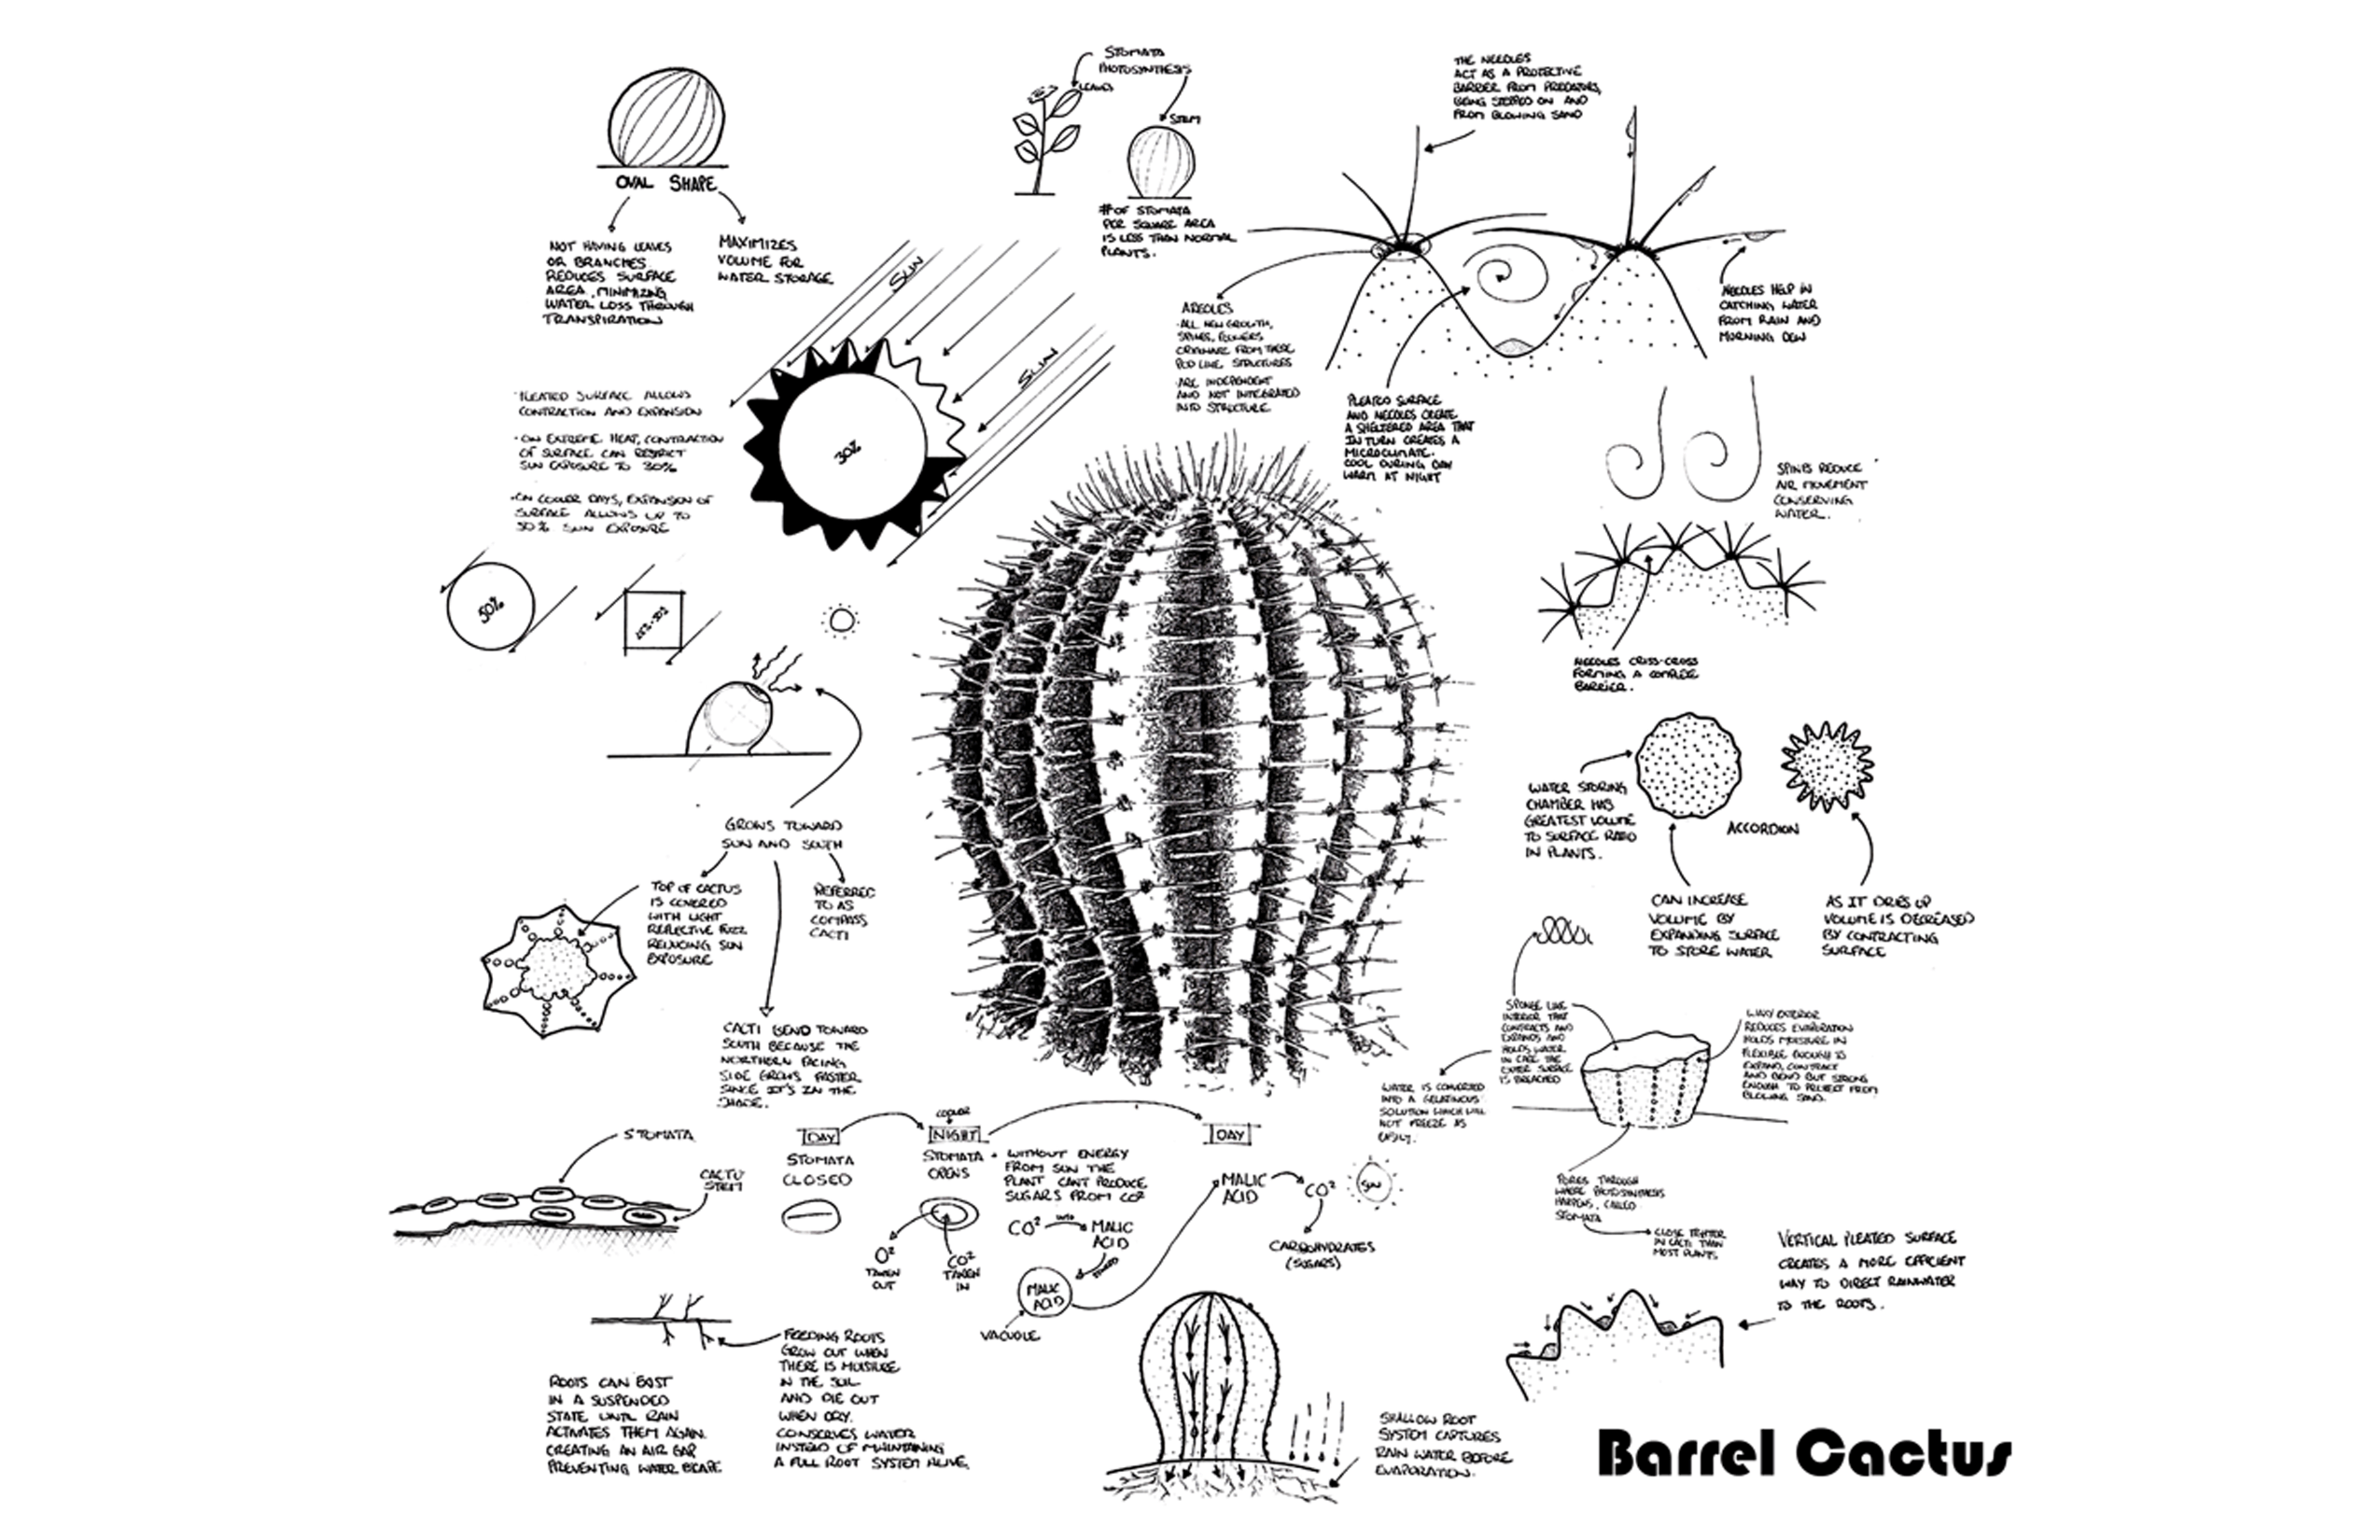 Architecture Inspired By Barrel Cactus